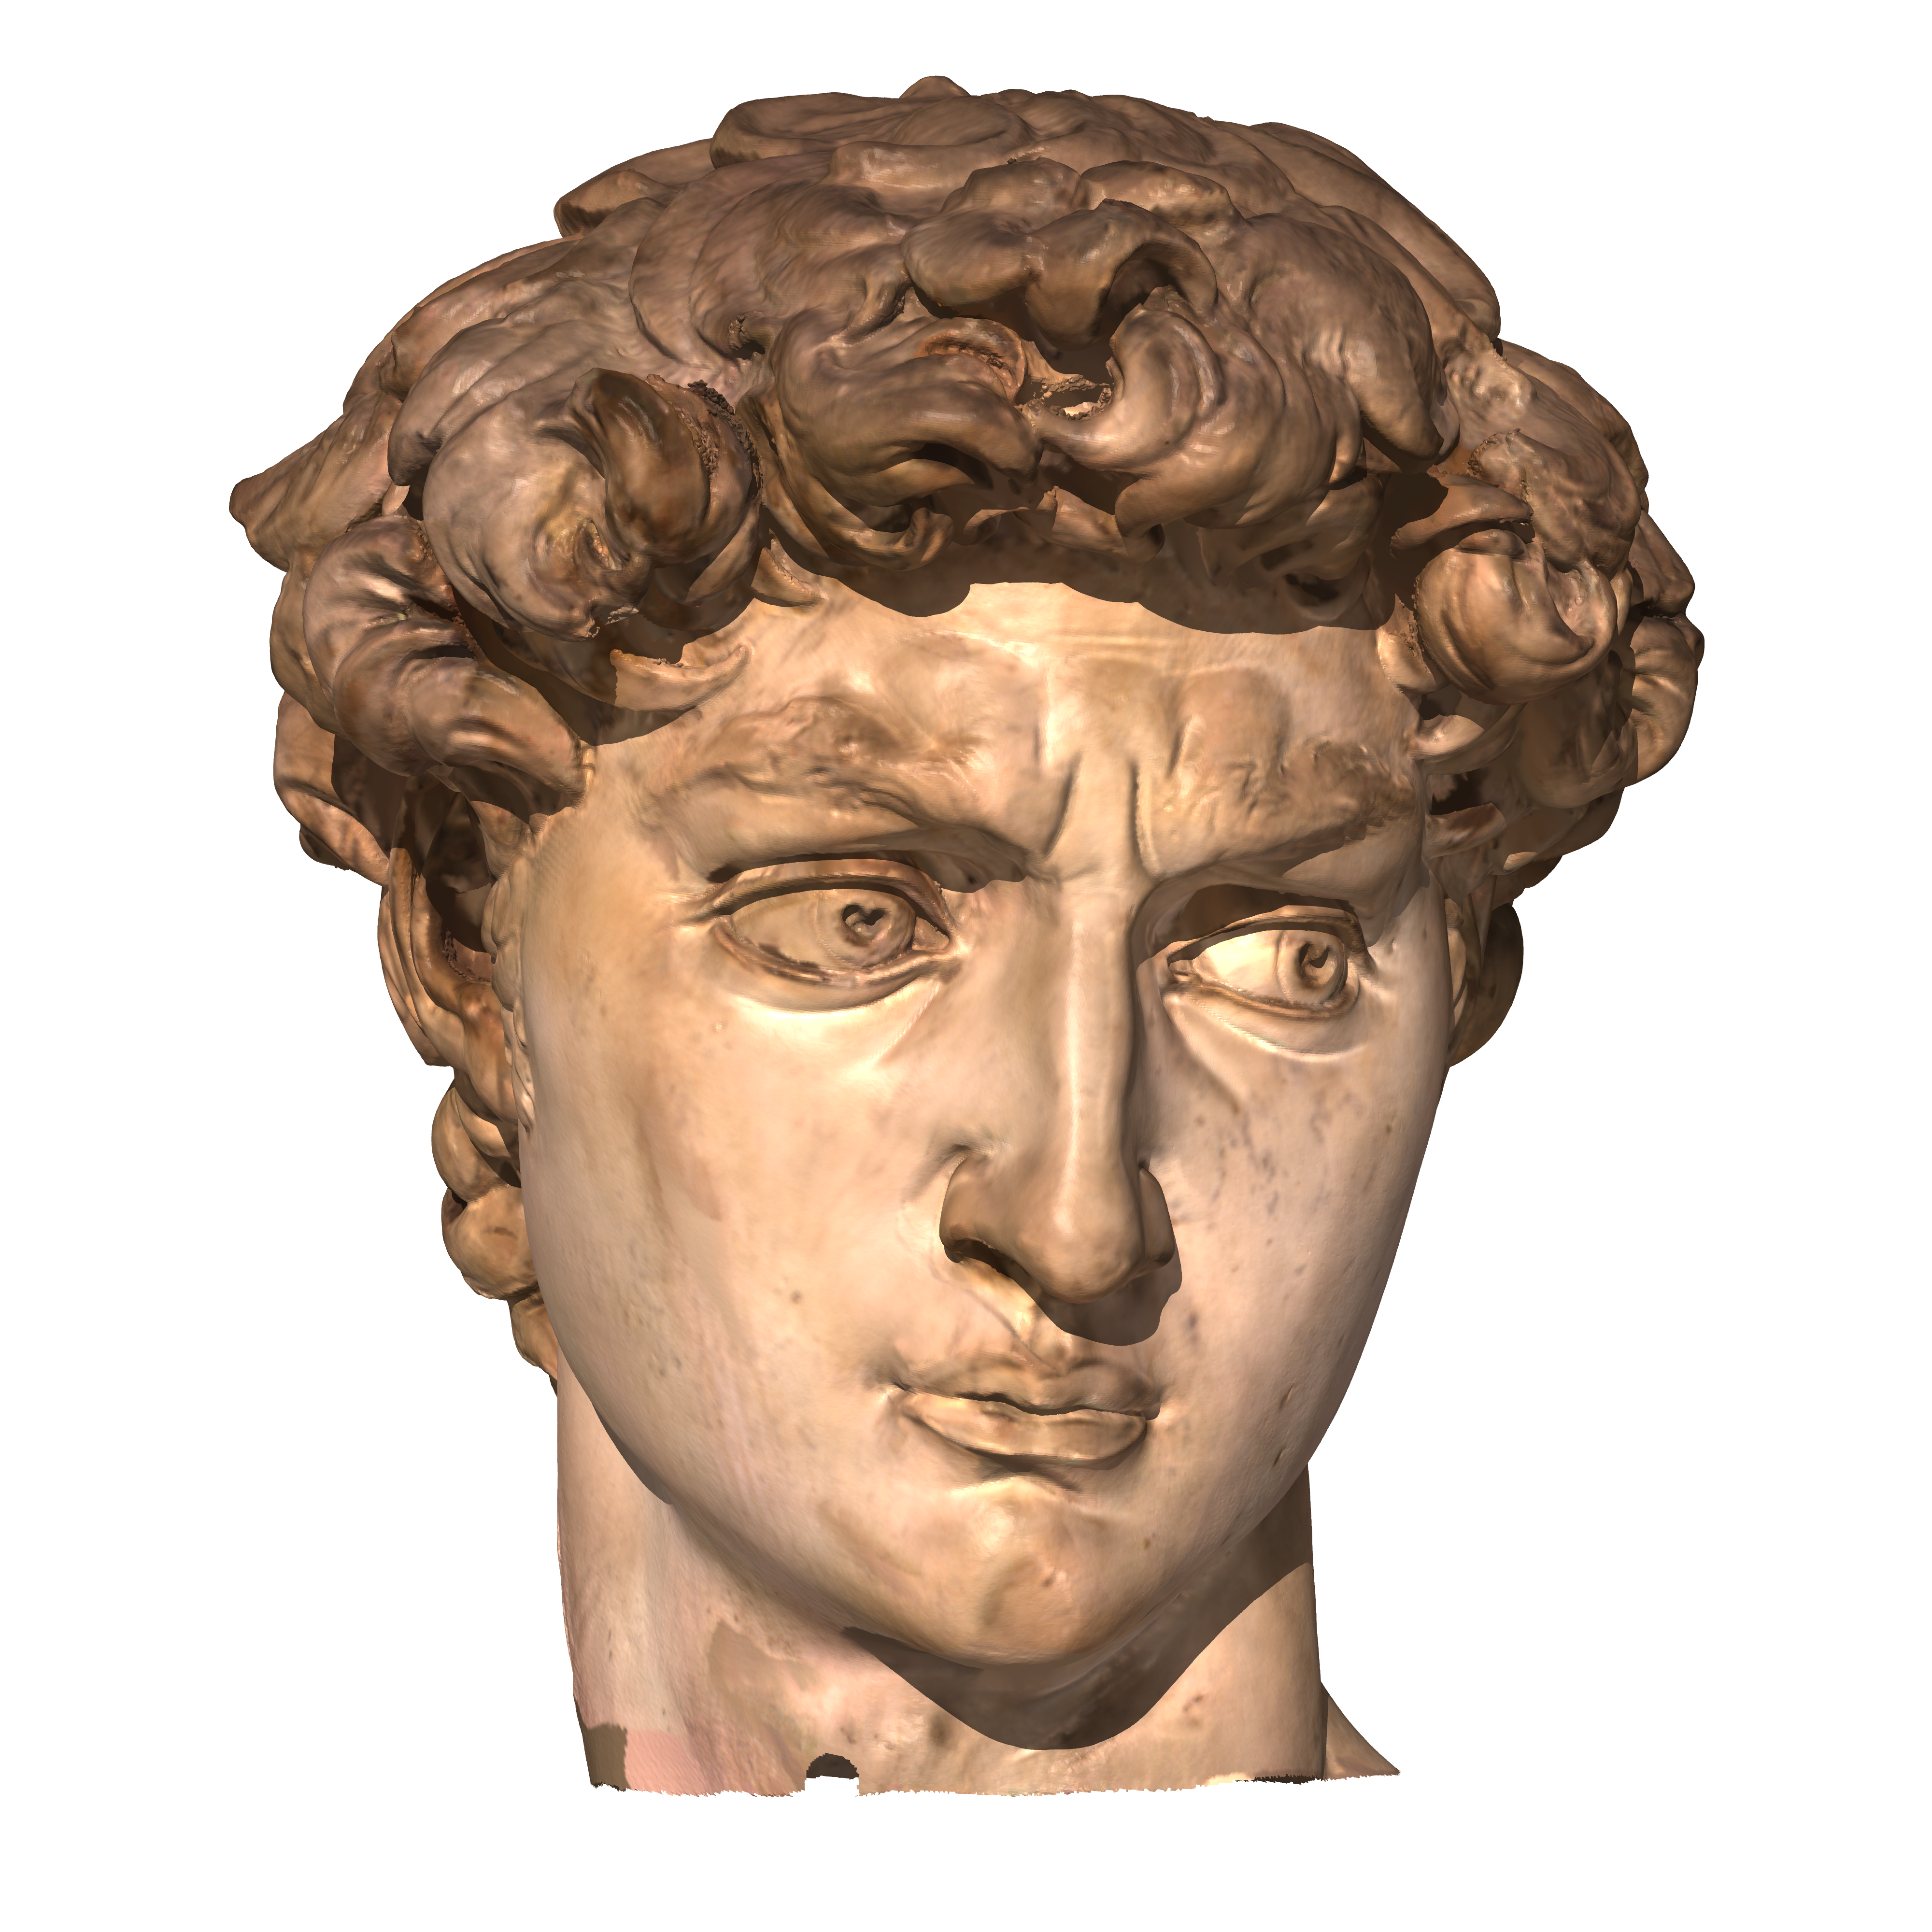 David statue png. Michelangelo head transprent free